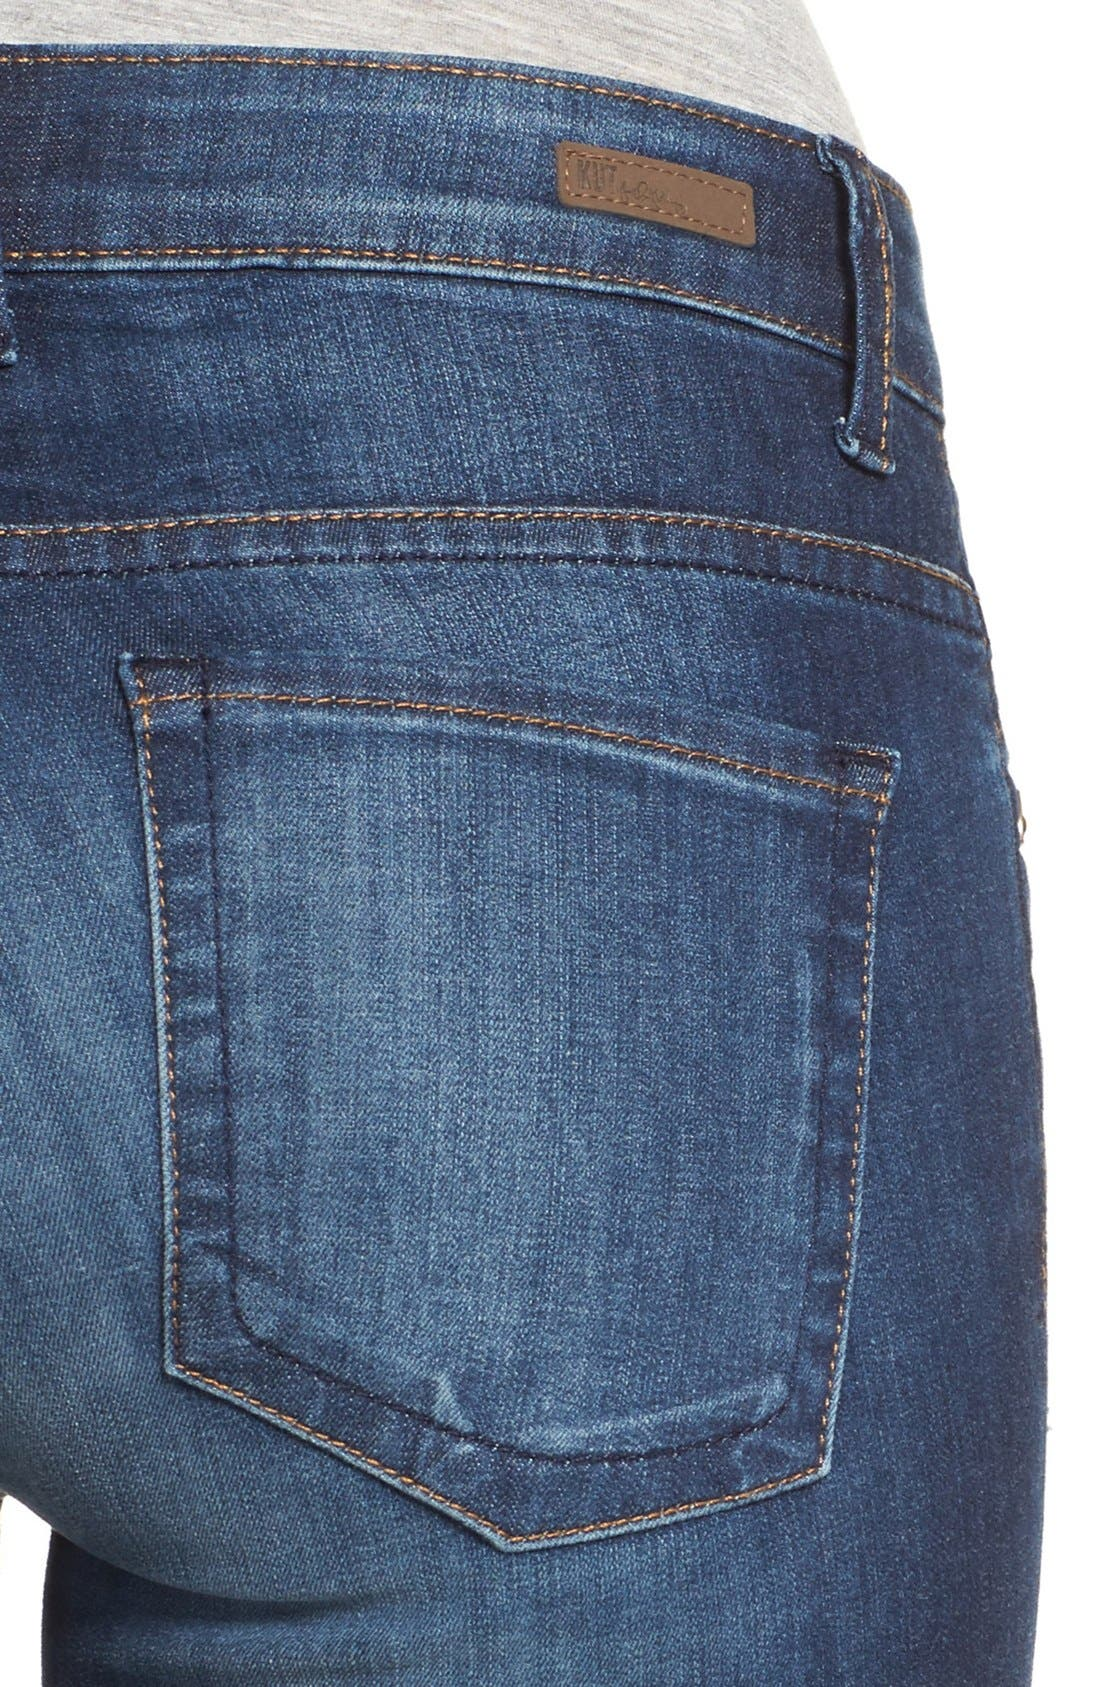 Alternate Image 4  - KUT from the Kloth 'Natalie' Stretch Bootcut Jeans (Adaptive) (Regular & Petite)